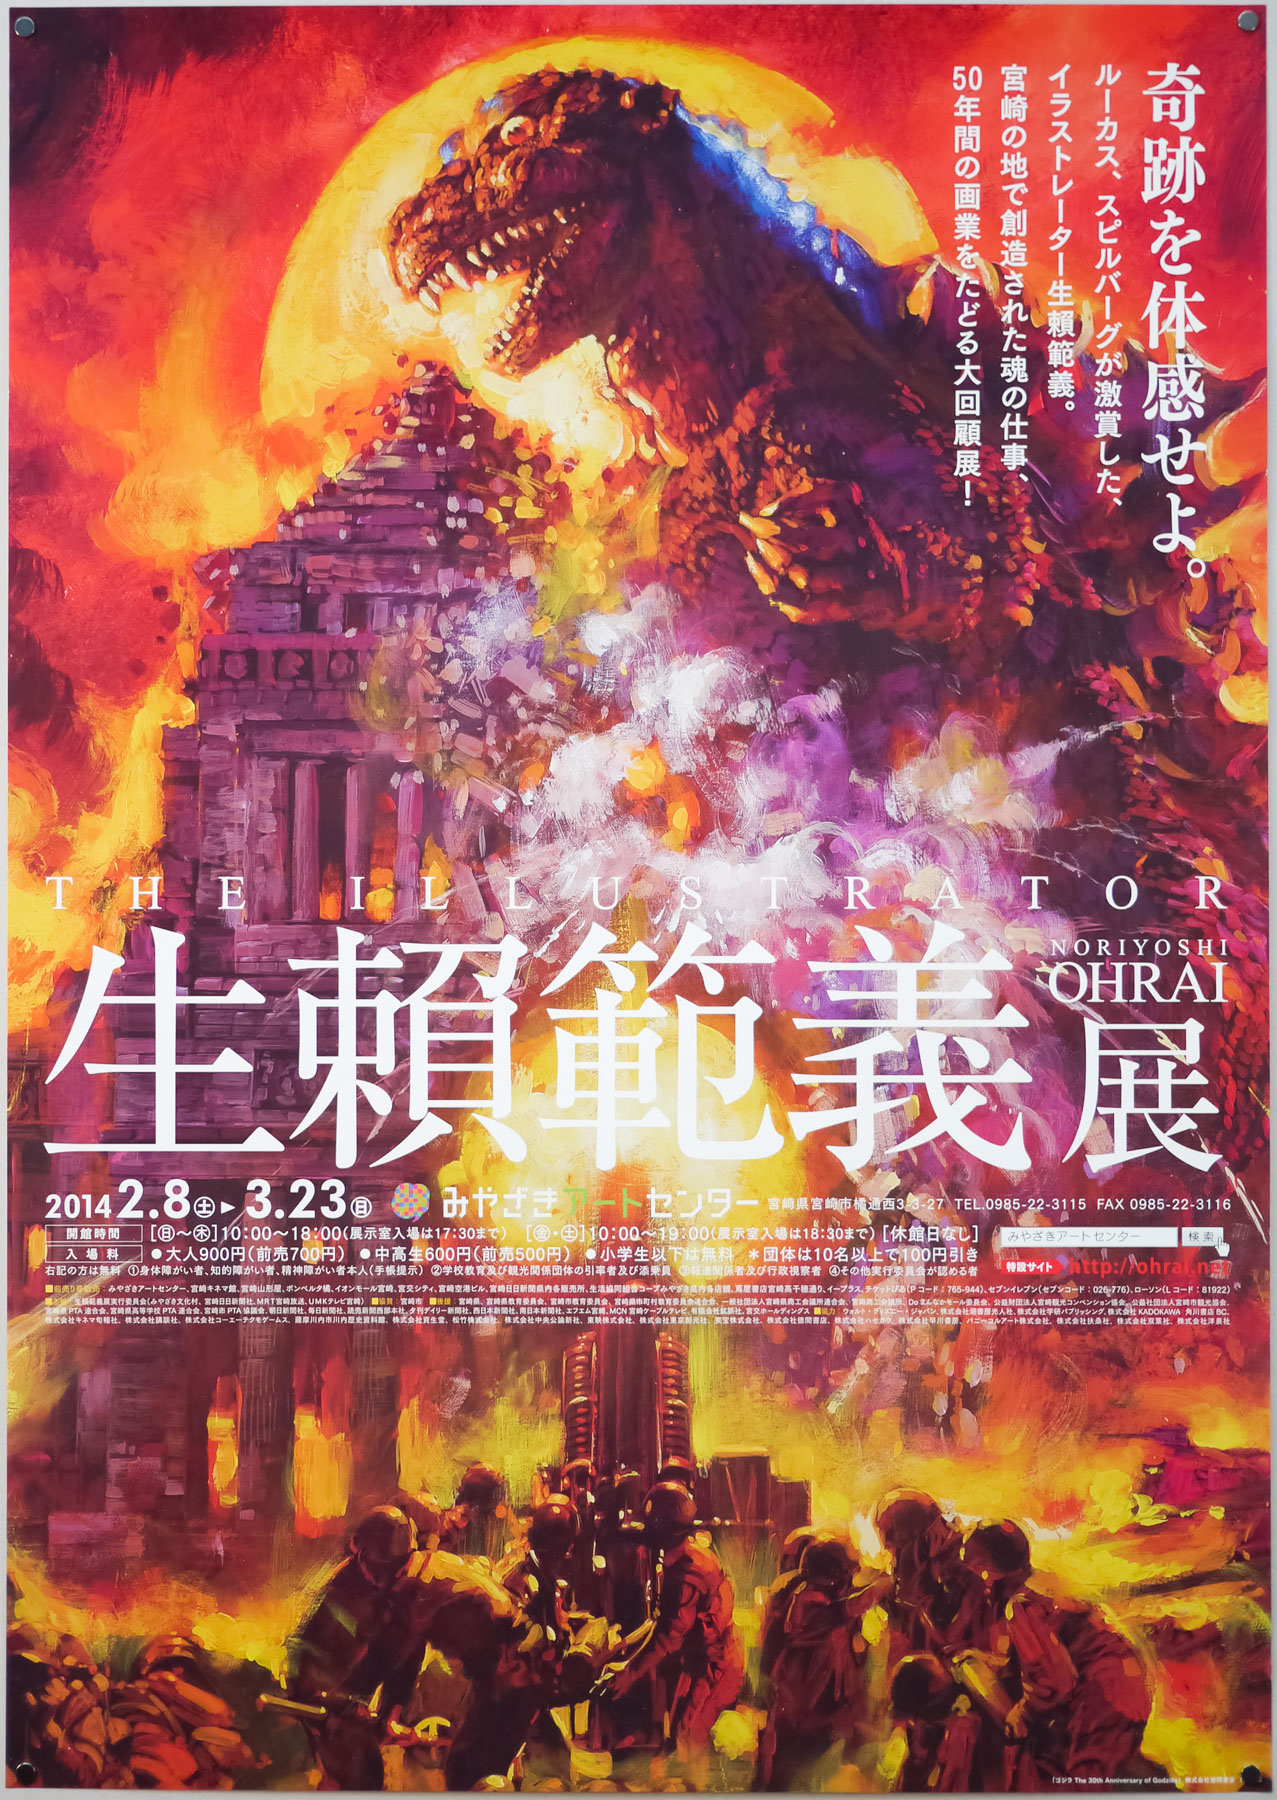 One of four B2 posters used to advertise the Noriyoshi Ohrai exhibition, featuring one of many paintings that the artist did of the King of the Kaiju, Godzilla.